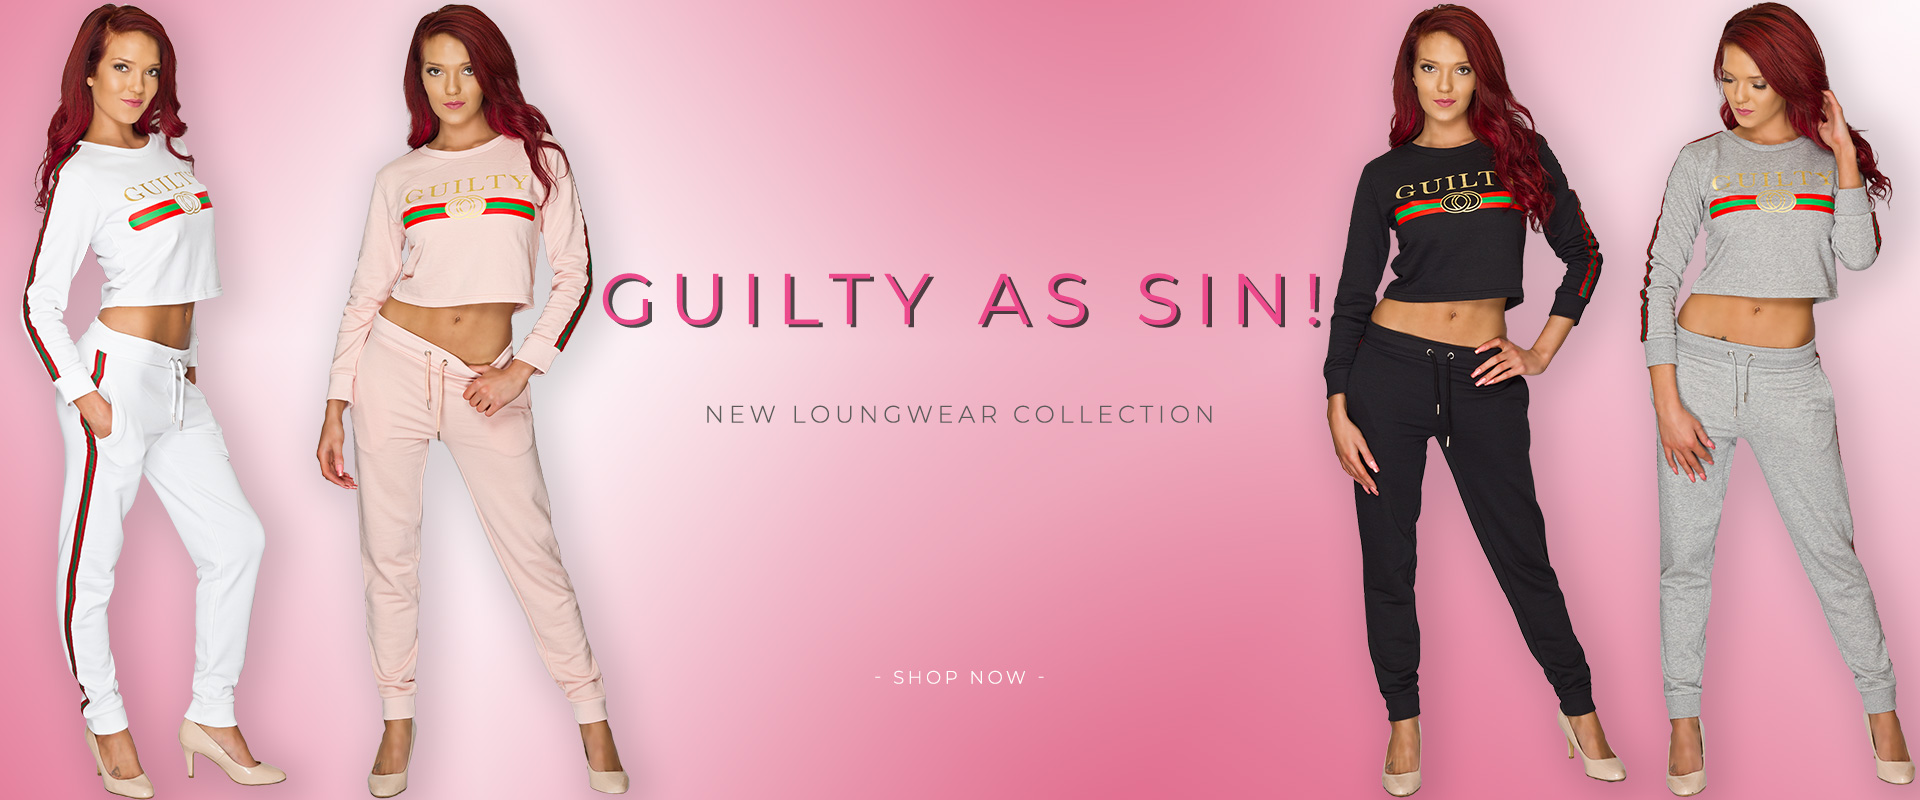 Guilty Loungewear Tracksuit